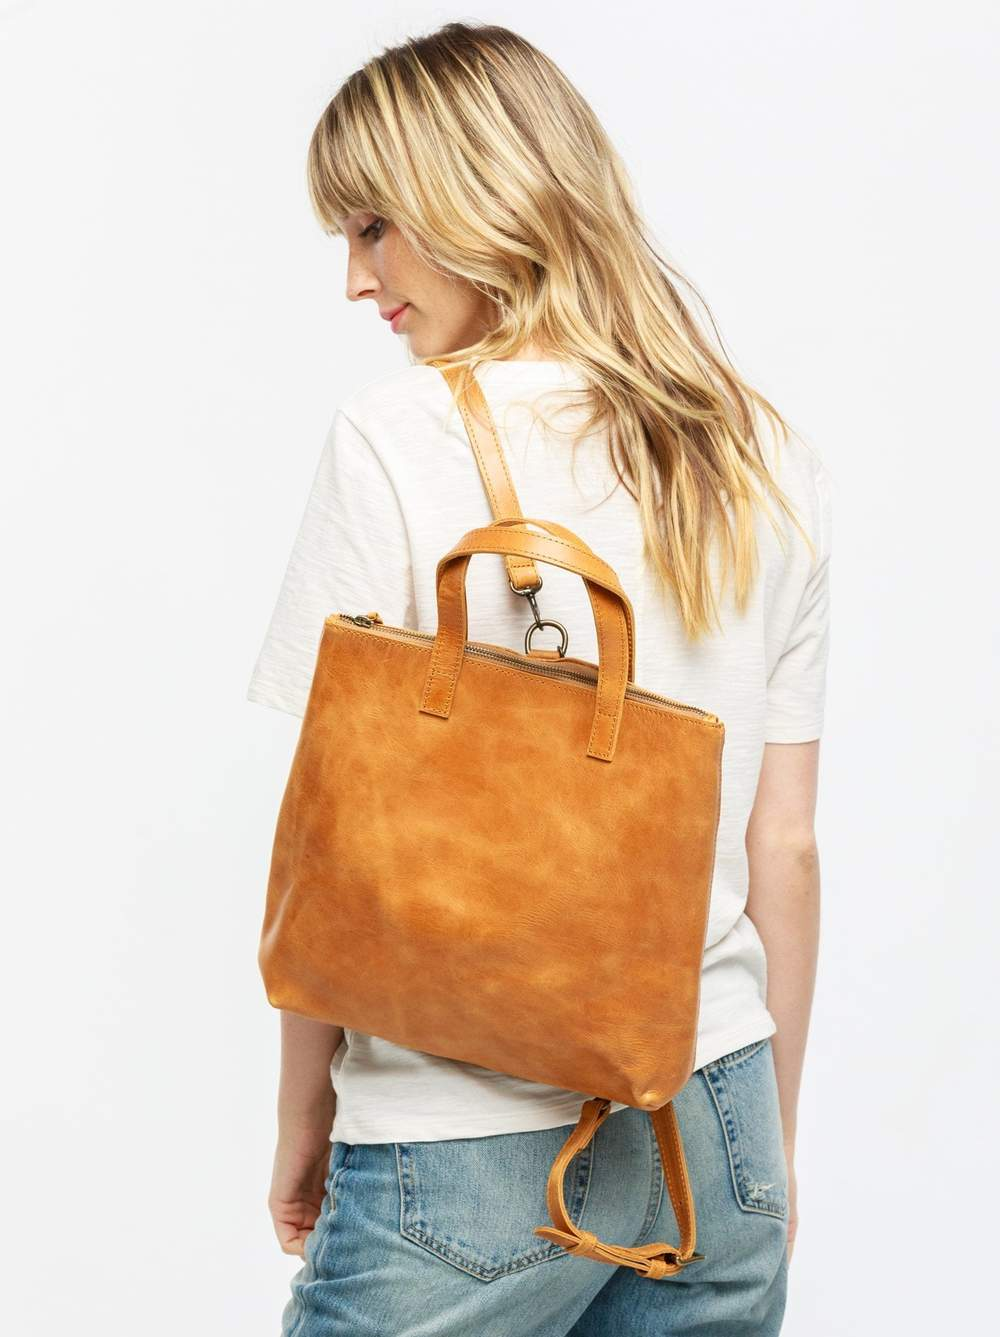 ABLE ABERA BACKPACK - Penny Lane Boutique